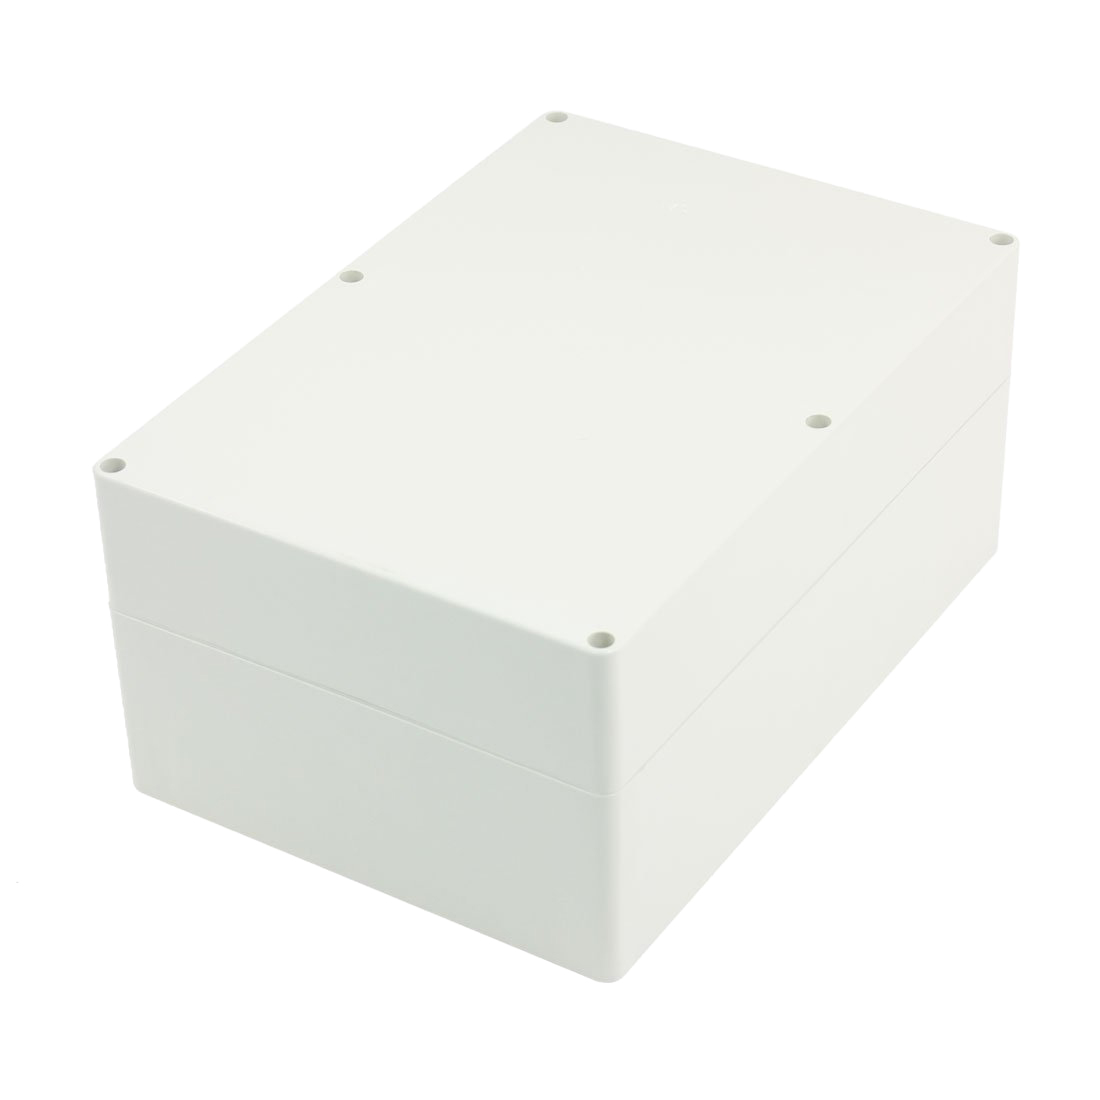 Waterproof Clear Cover Plastic Electronic Project Box 265x185x125mm